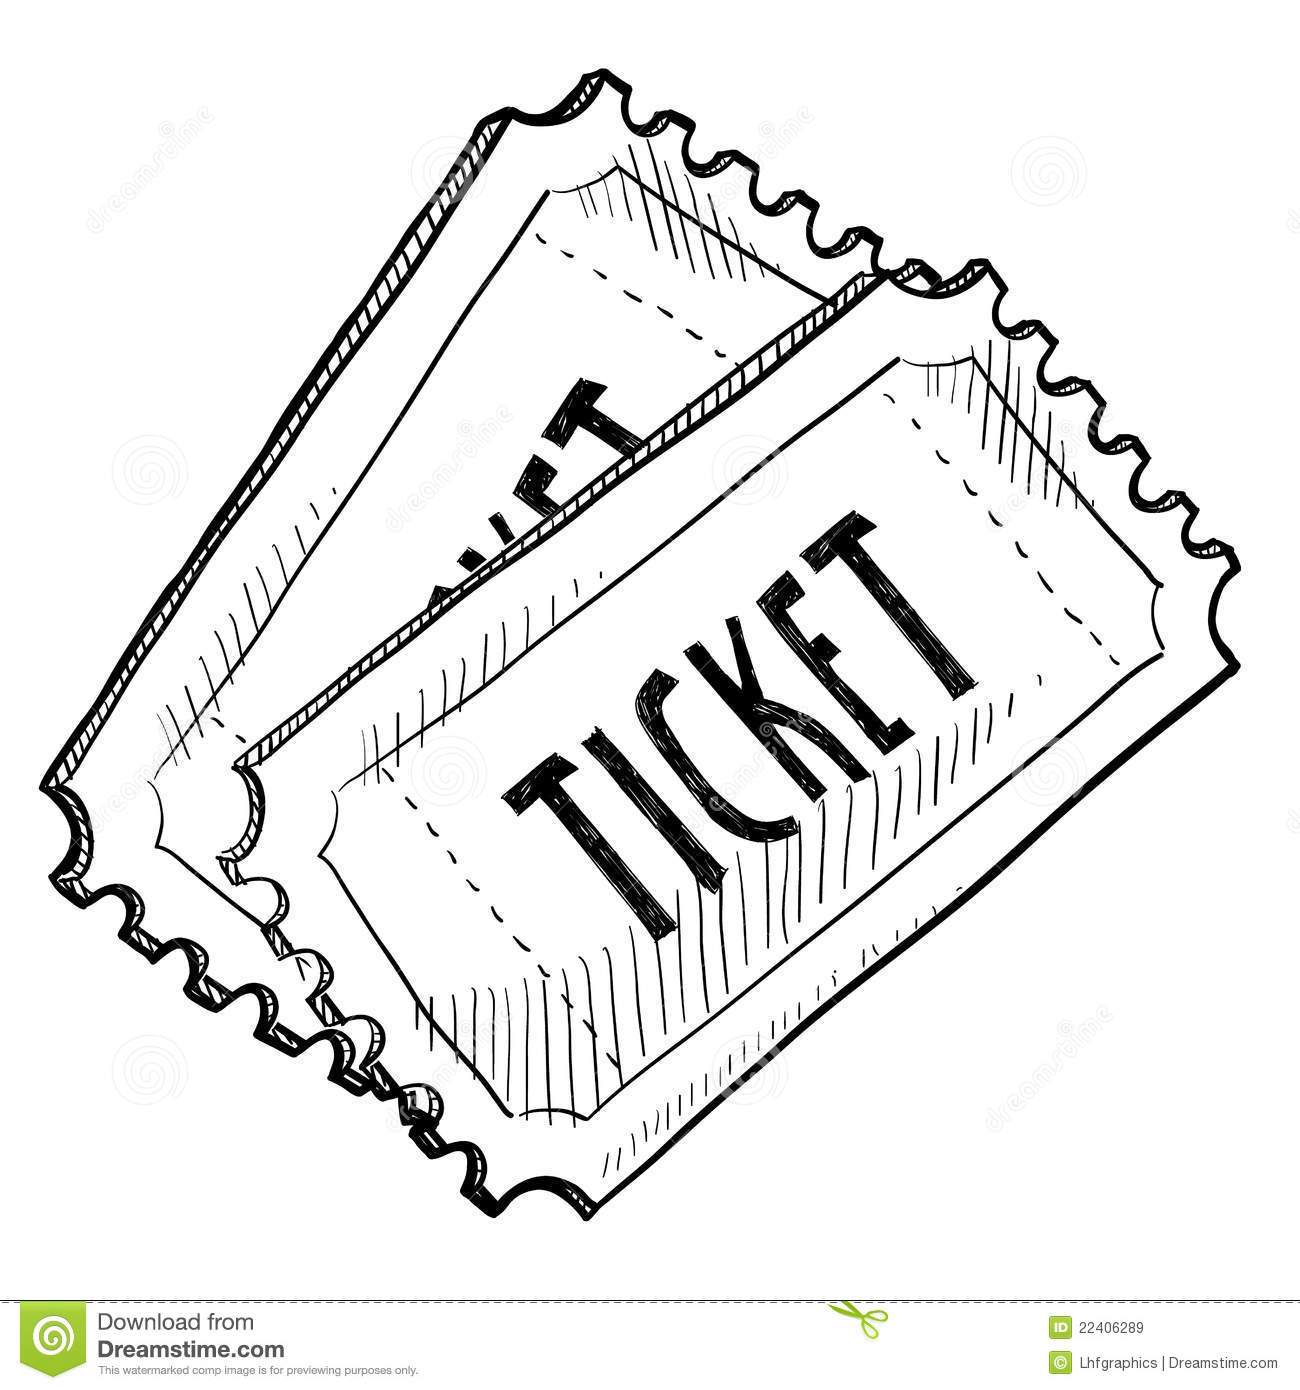 Raffle clipart event ticket. Tickets for drawings incep